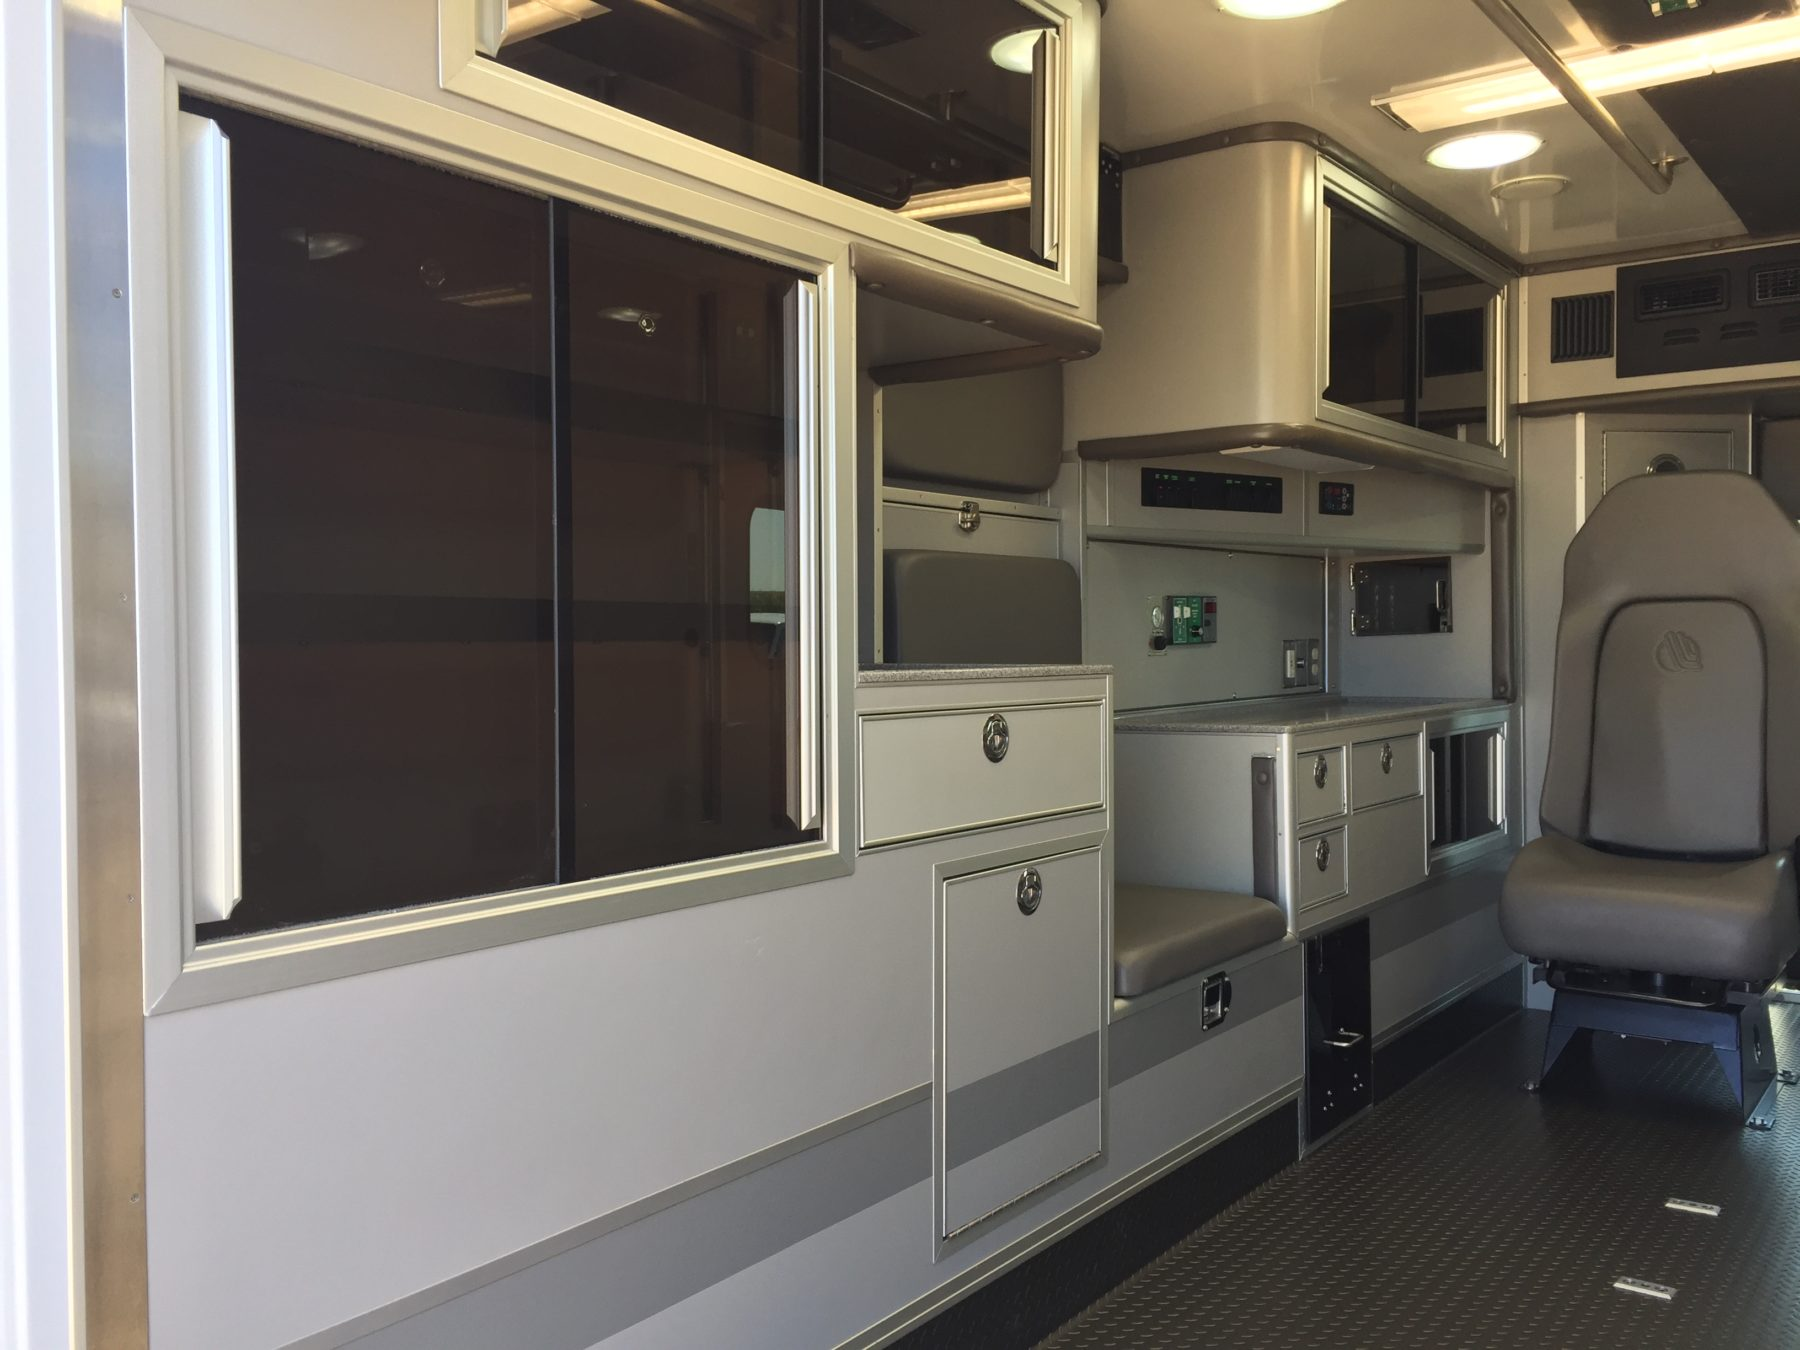 2019 Ford E450 Type 3 Ambulance For Sale – Picture 12